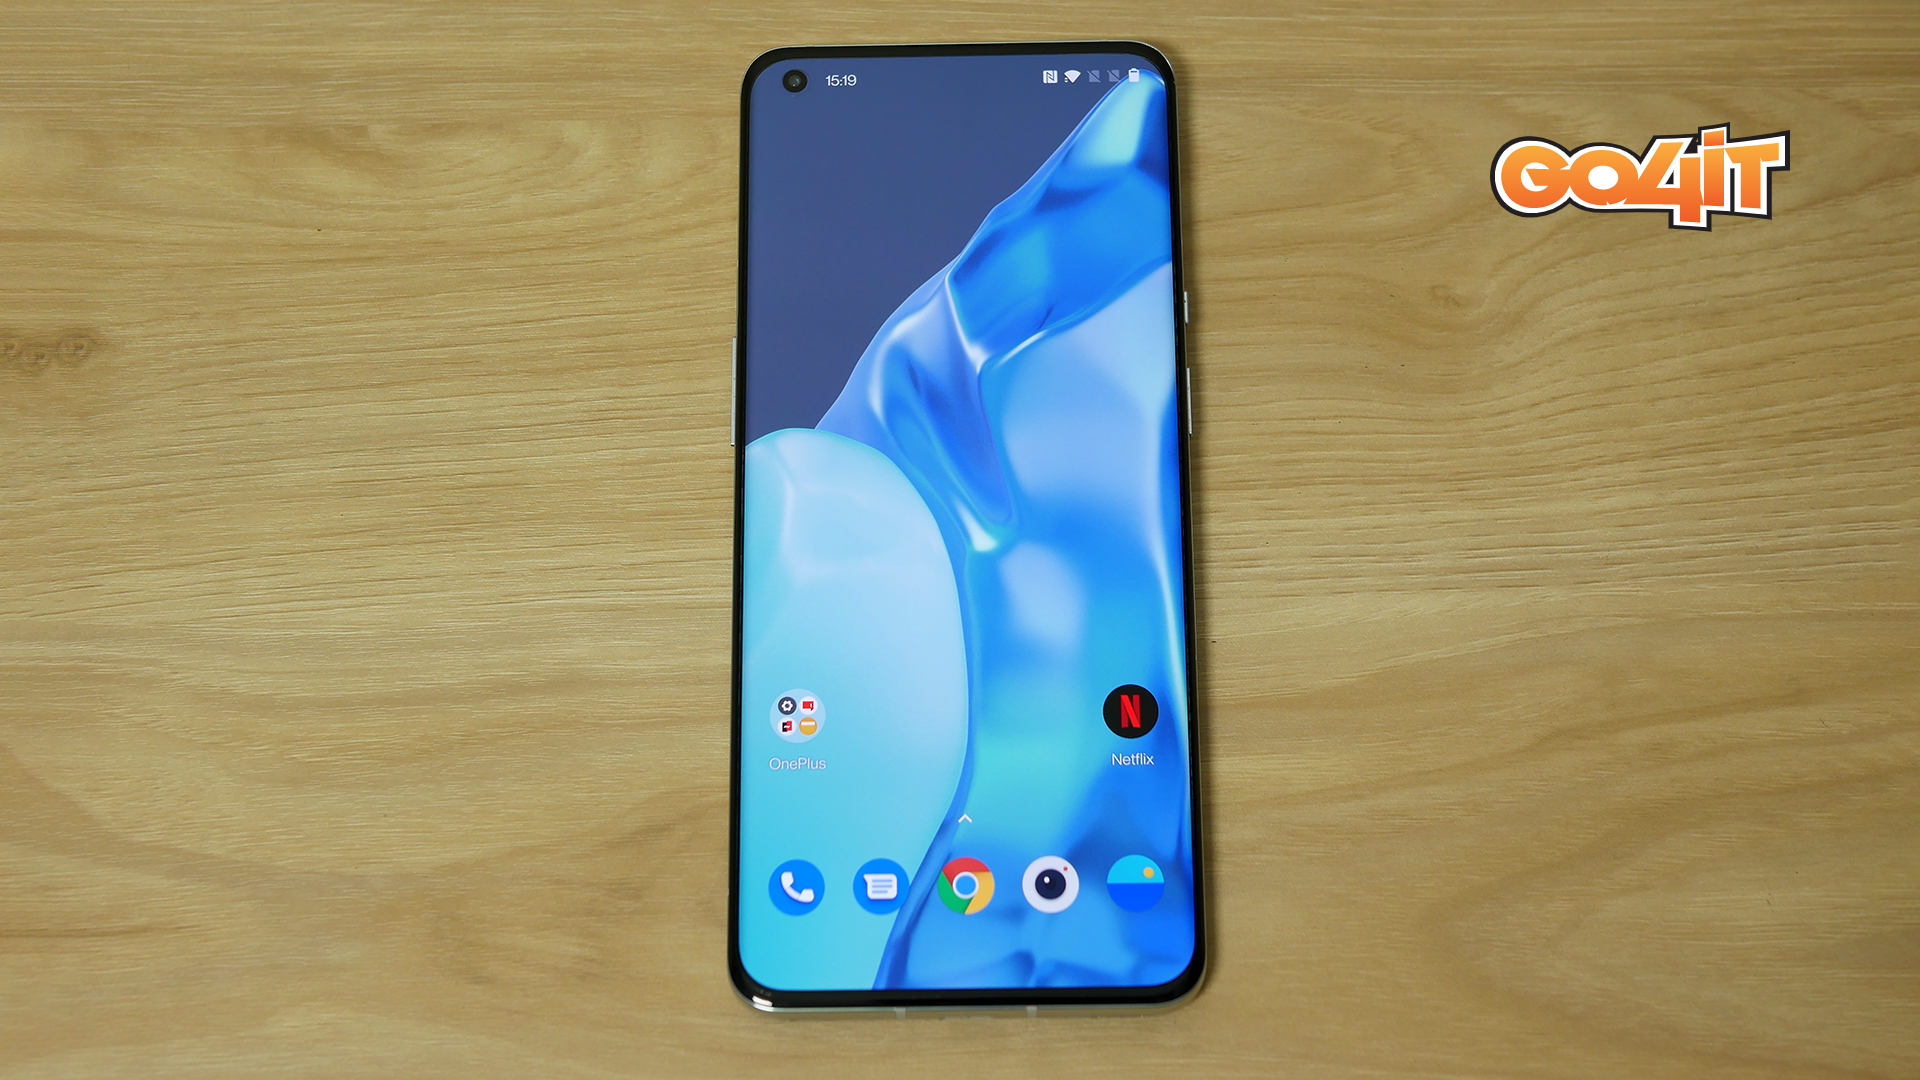 OnePlus 9 Pro front center